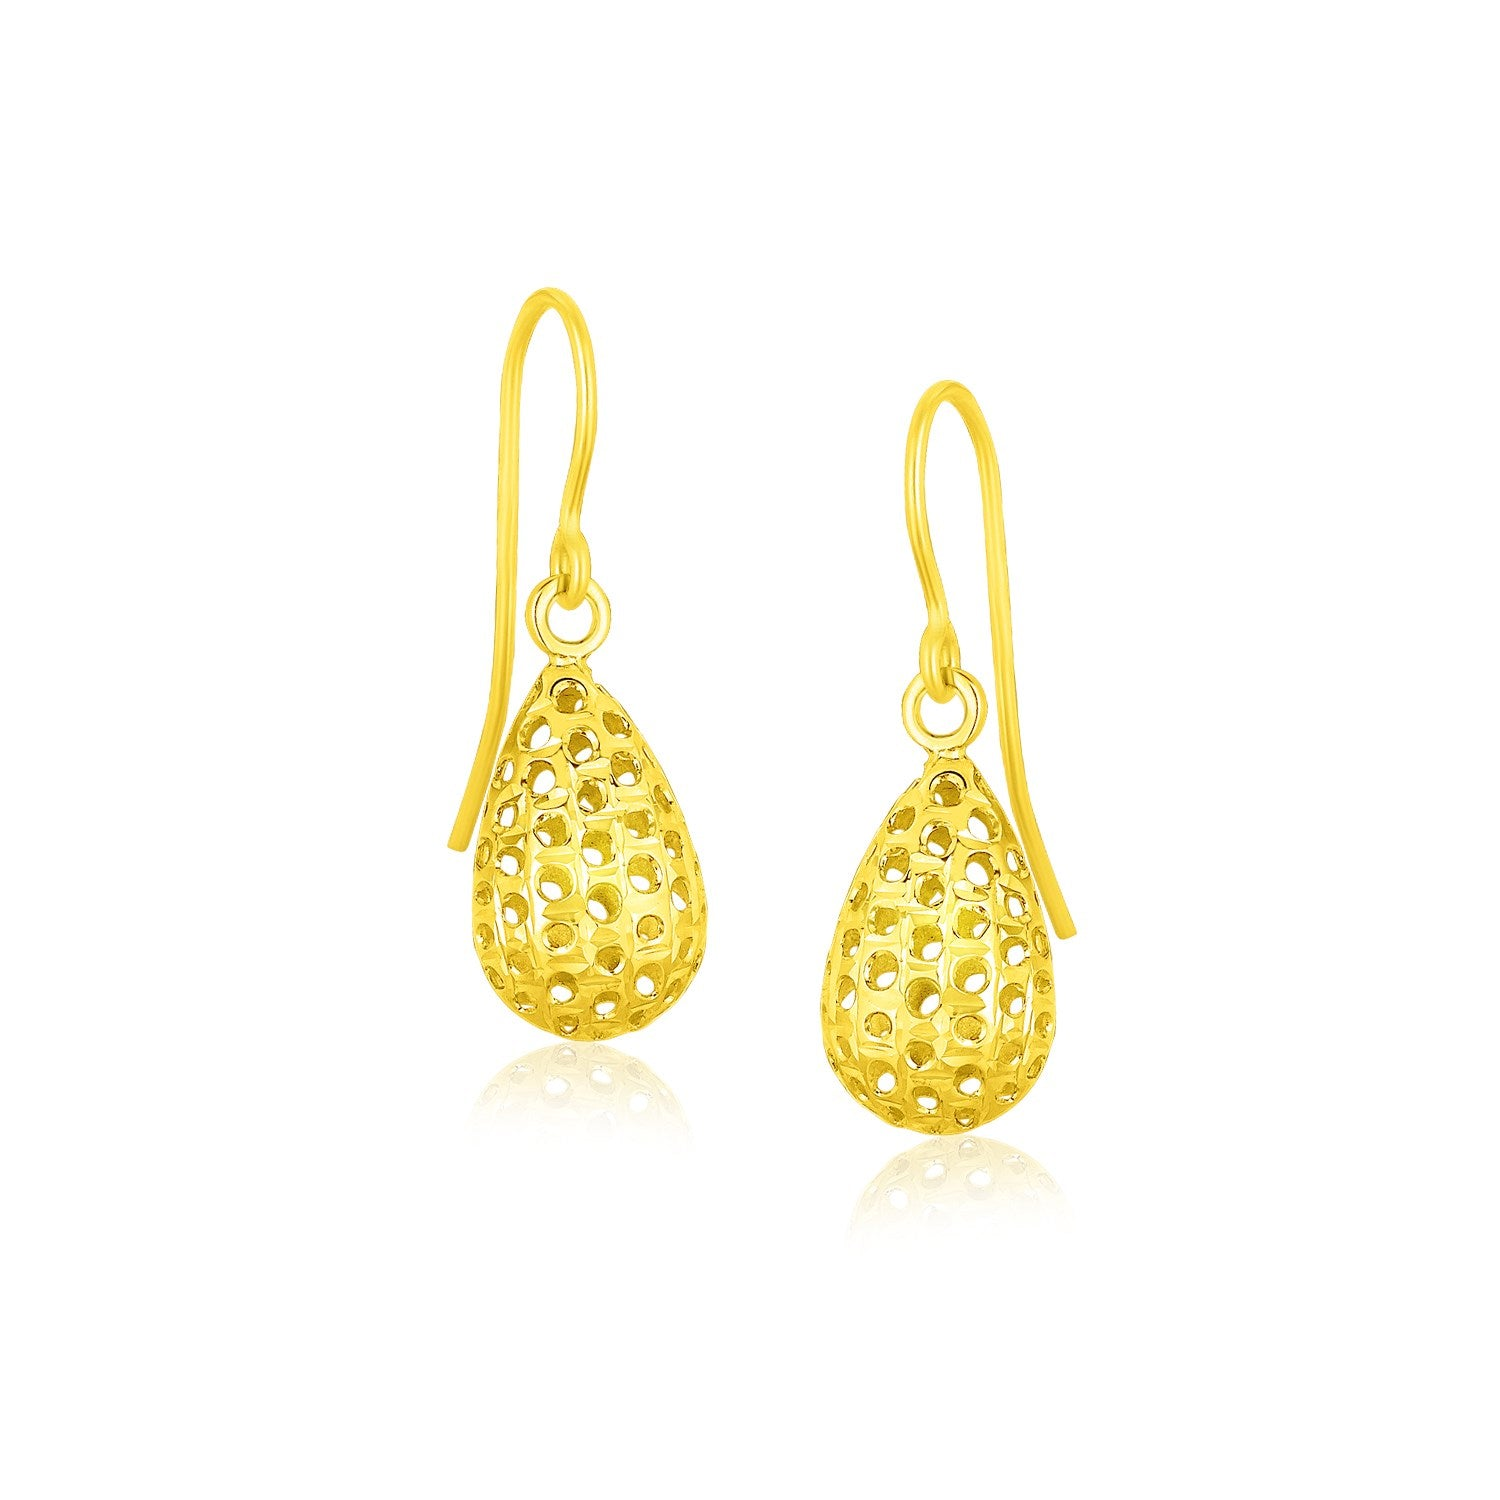 Original Modern Italian Style 14K Yellow Gold Teardrop Drop Earrings with Honeycomb Texture